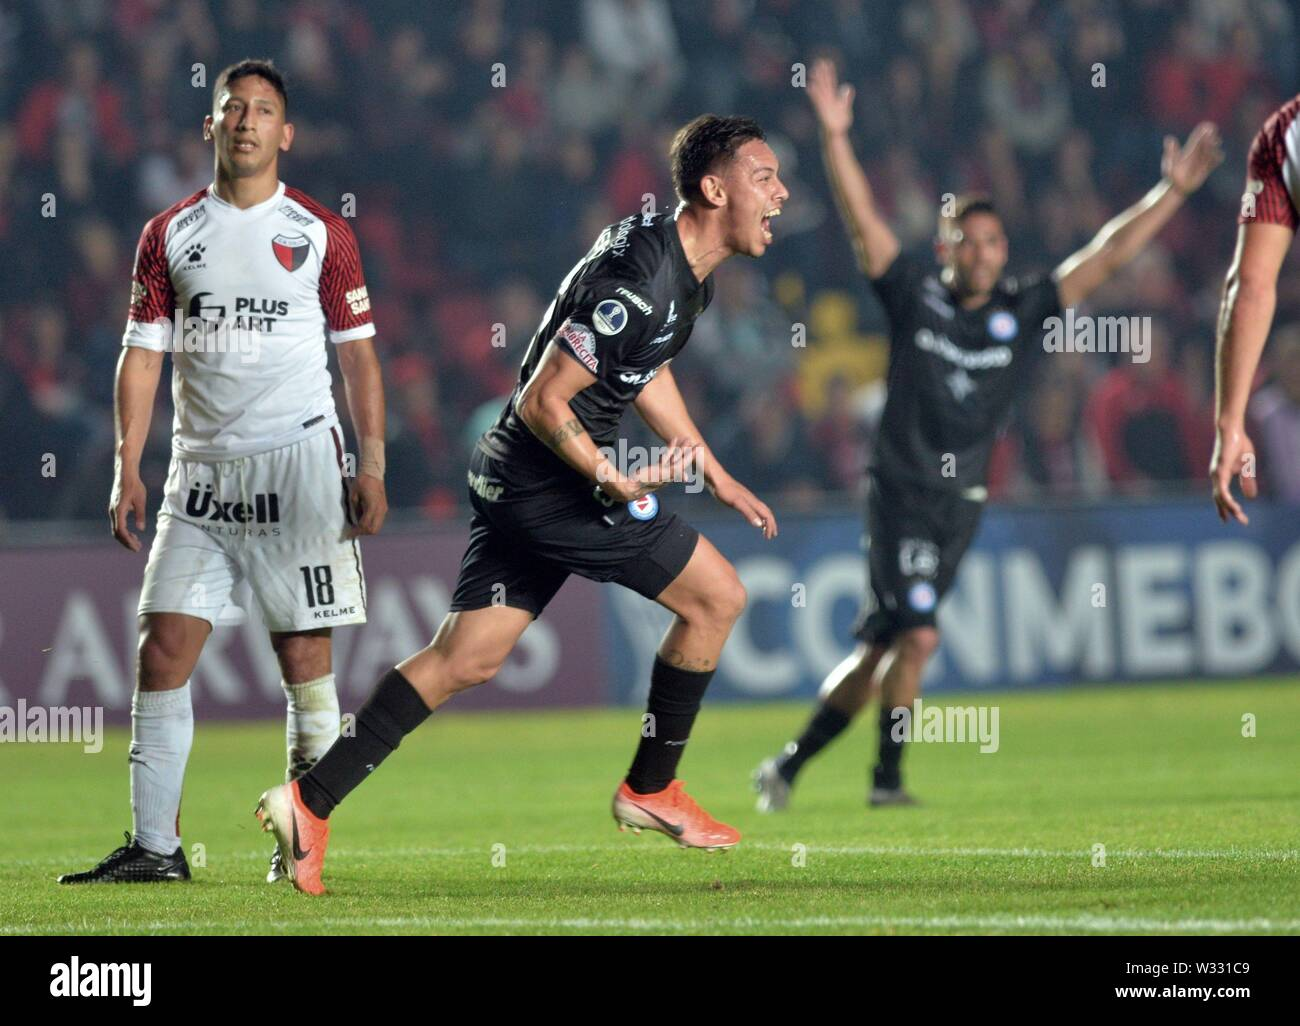 Santa Fe, Argentina. 12th July, 2019. Matias Romero (C) of Argentinos Juniors celebrates after scoring the 1-0 lead during the Copa Sudamericana round of 16 first leg match between Club Atletico Colon and Asociacion Atletica Argentinos Juniors at the Brigadier General Estanislao Lopez stadium in Santa Fe, Argentina, 11 July 2019. Credit: JAVIER ESCOBAR/EFE/Alamy Live News - Stock Image